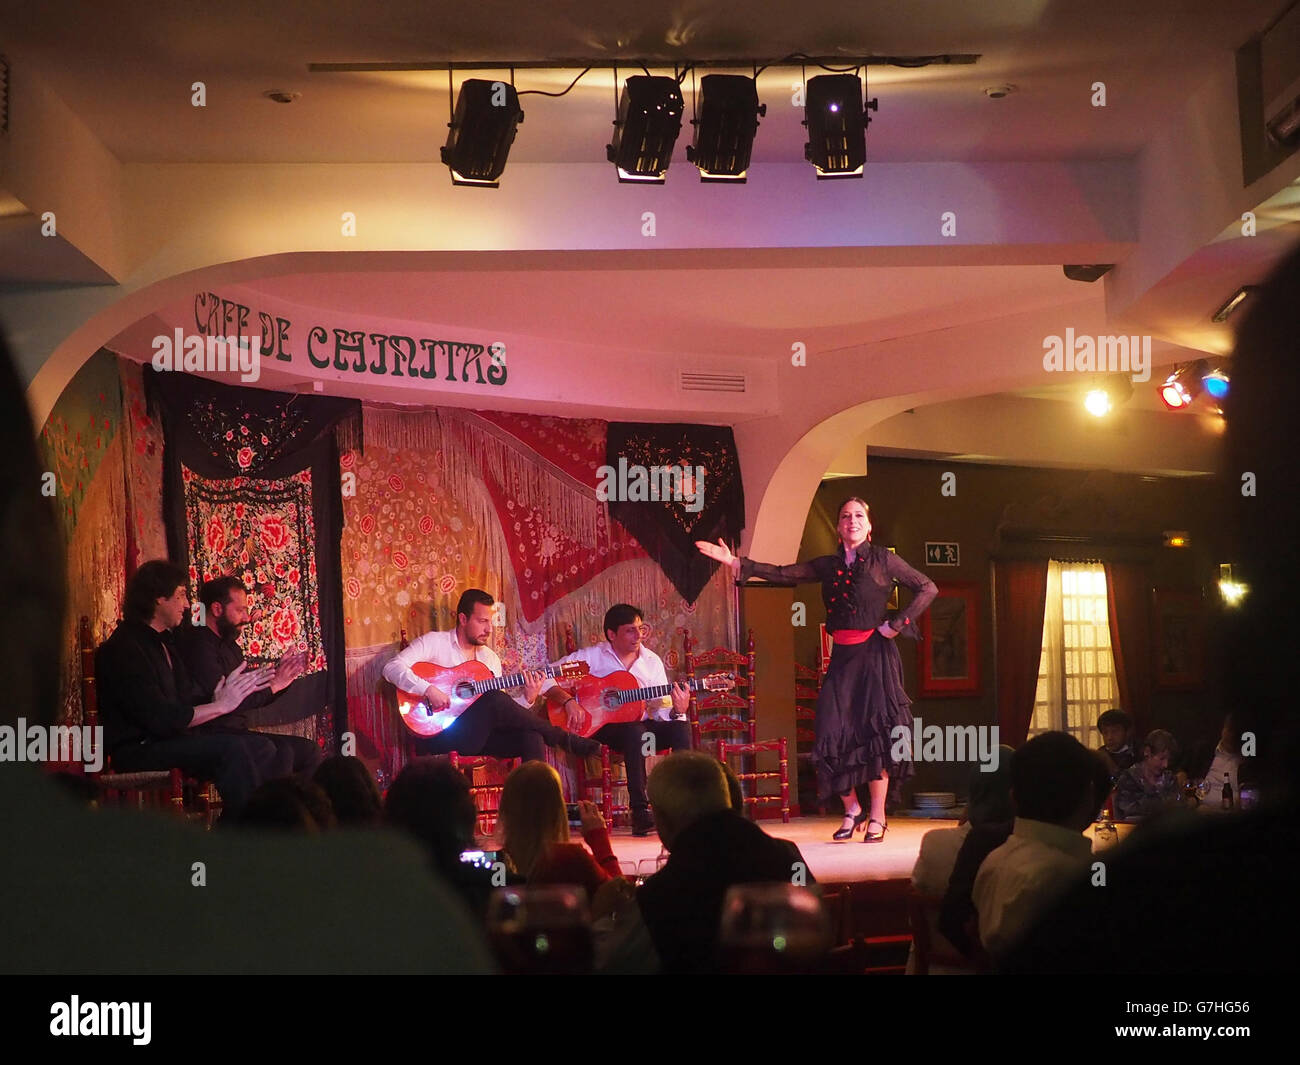 Flamenco club, Madrid, Spain - Stock Image